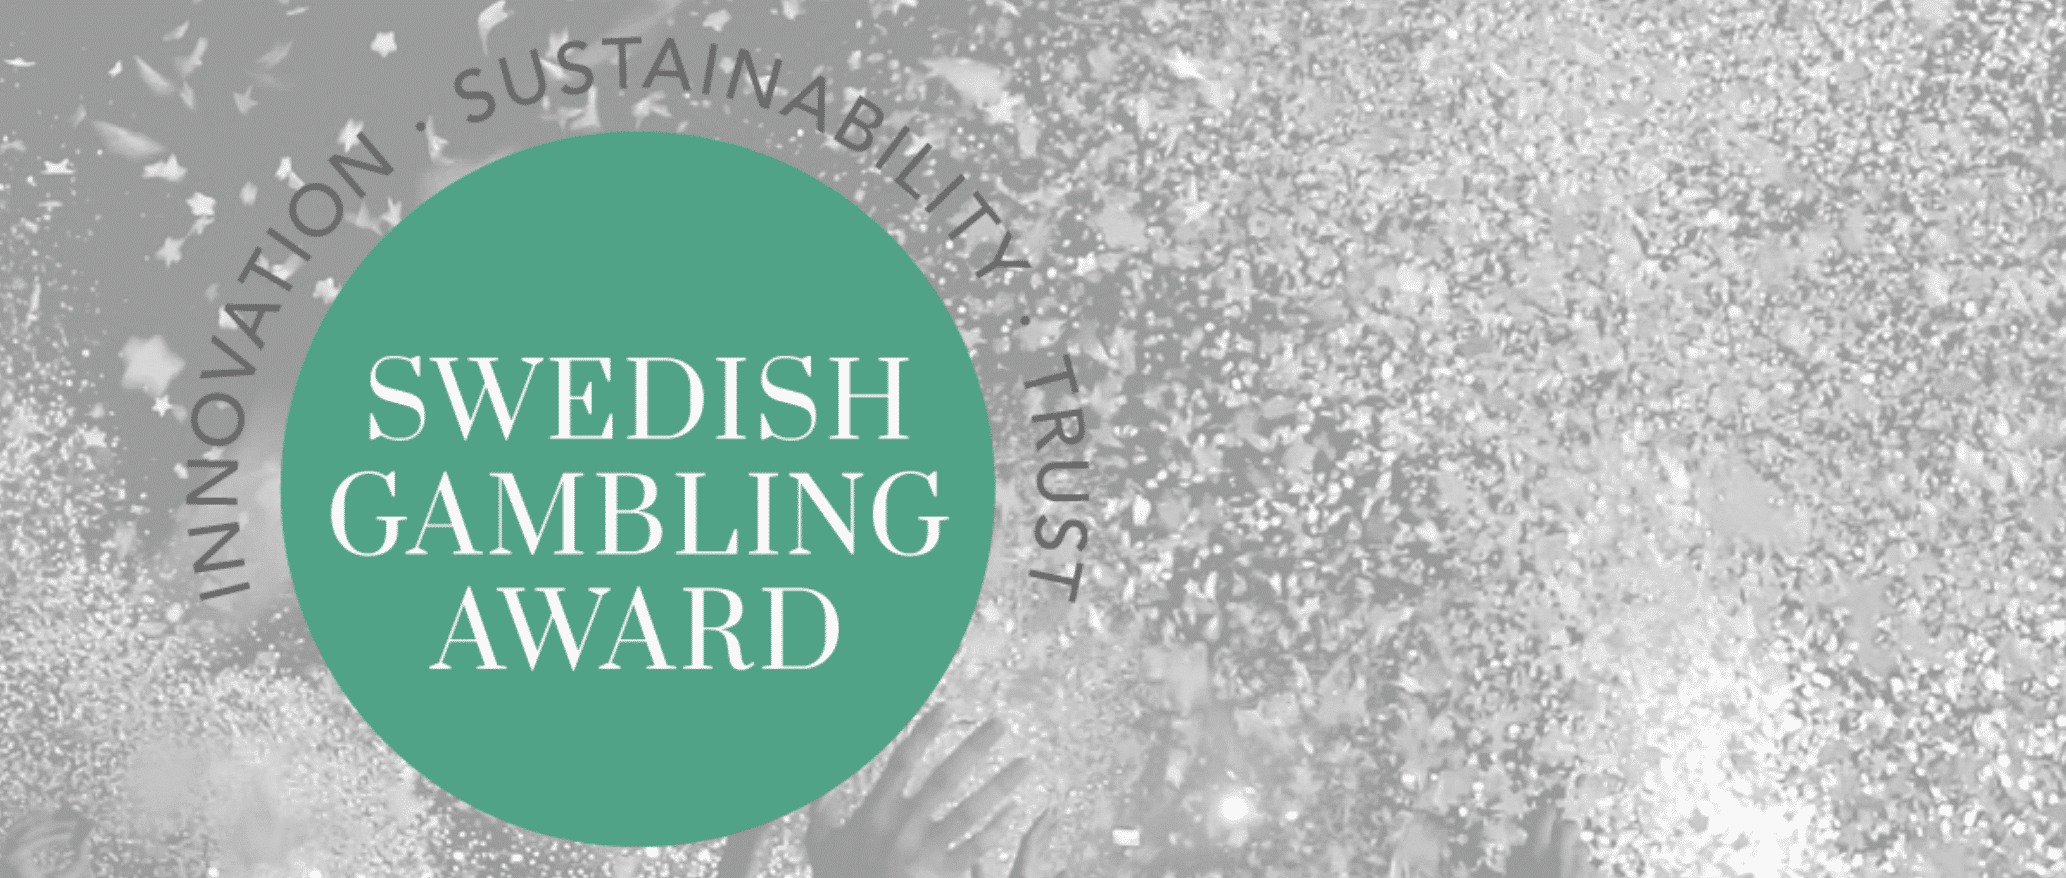 Nu sjösätts Swedish Gambling Award